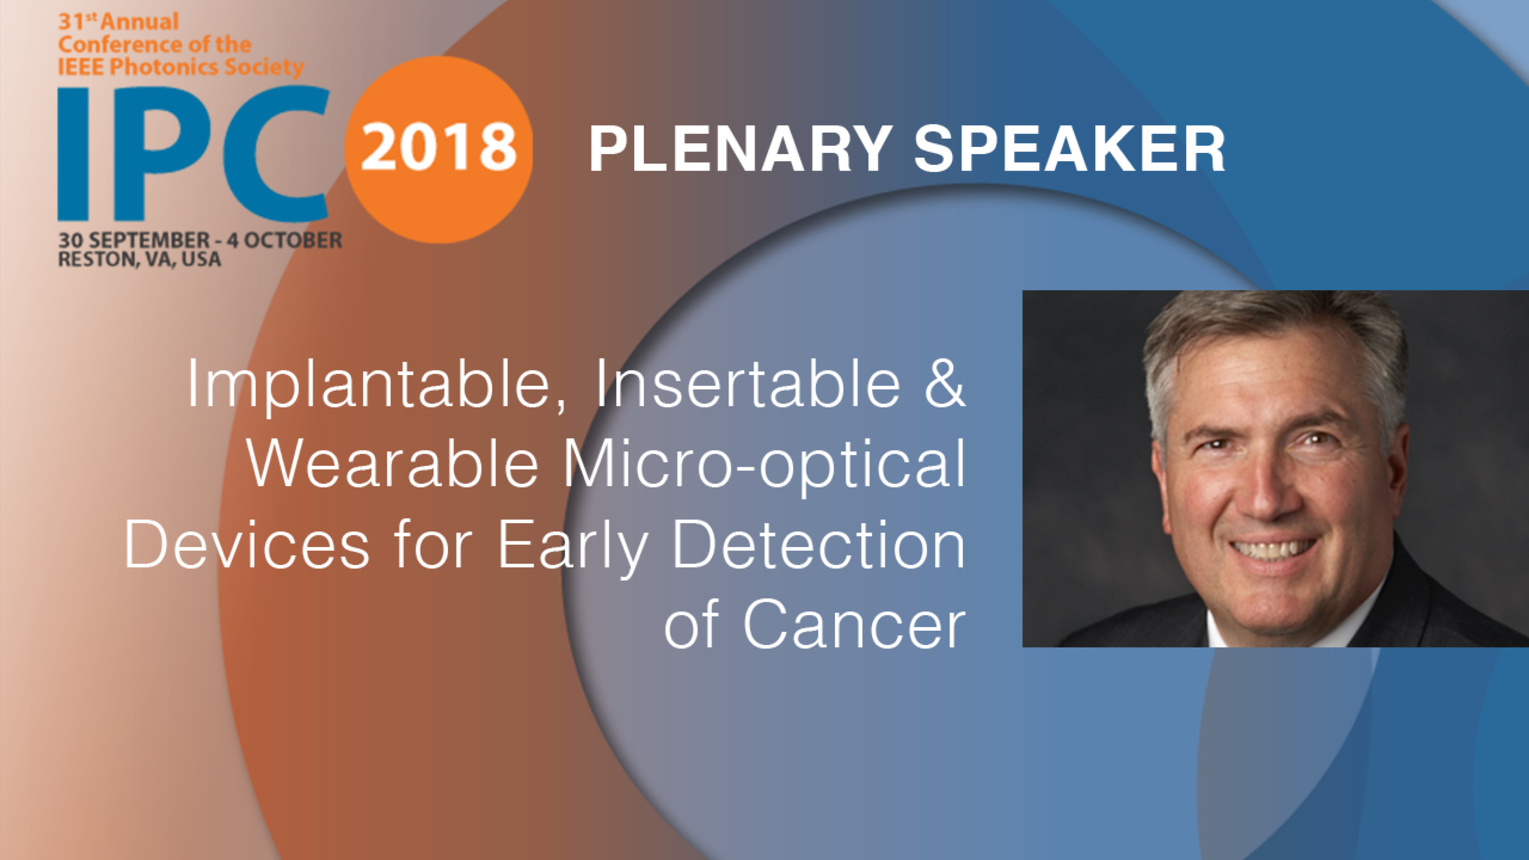 Implantable, Insertable and Wearable Micro-optical Devices for Early Detection of Cancer - Plenary Speaker, Christopher Contag - IPC 2018